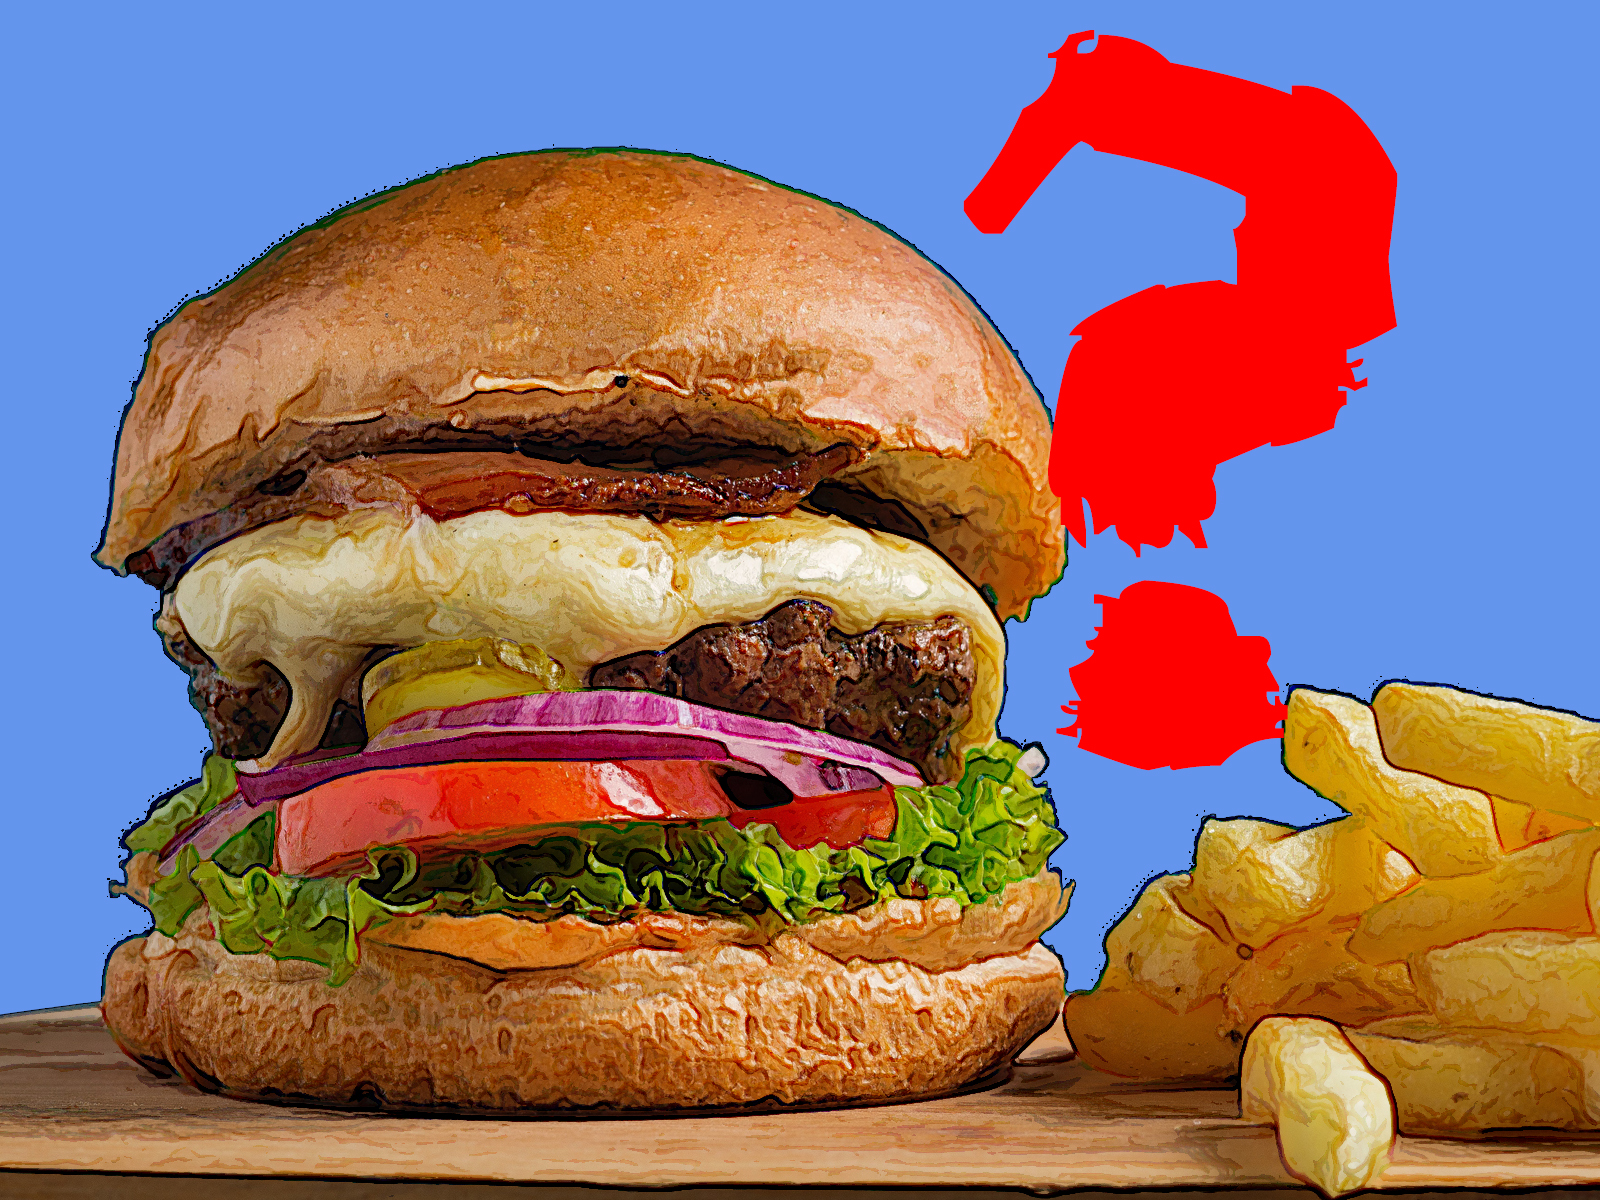 food-junk-burger-question